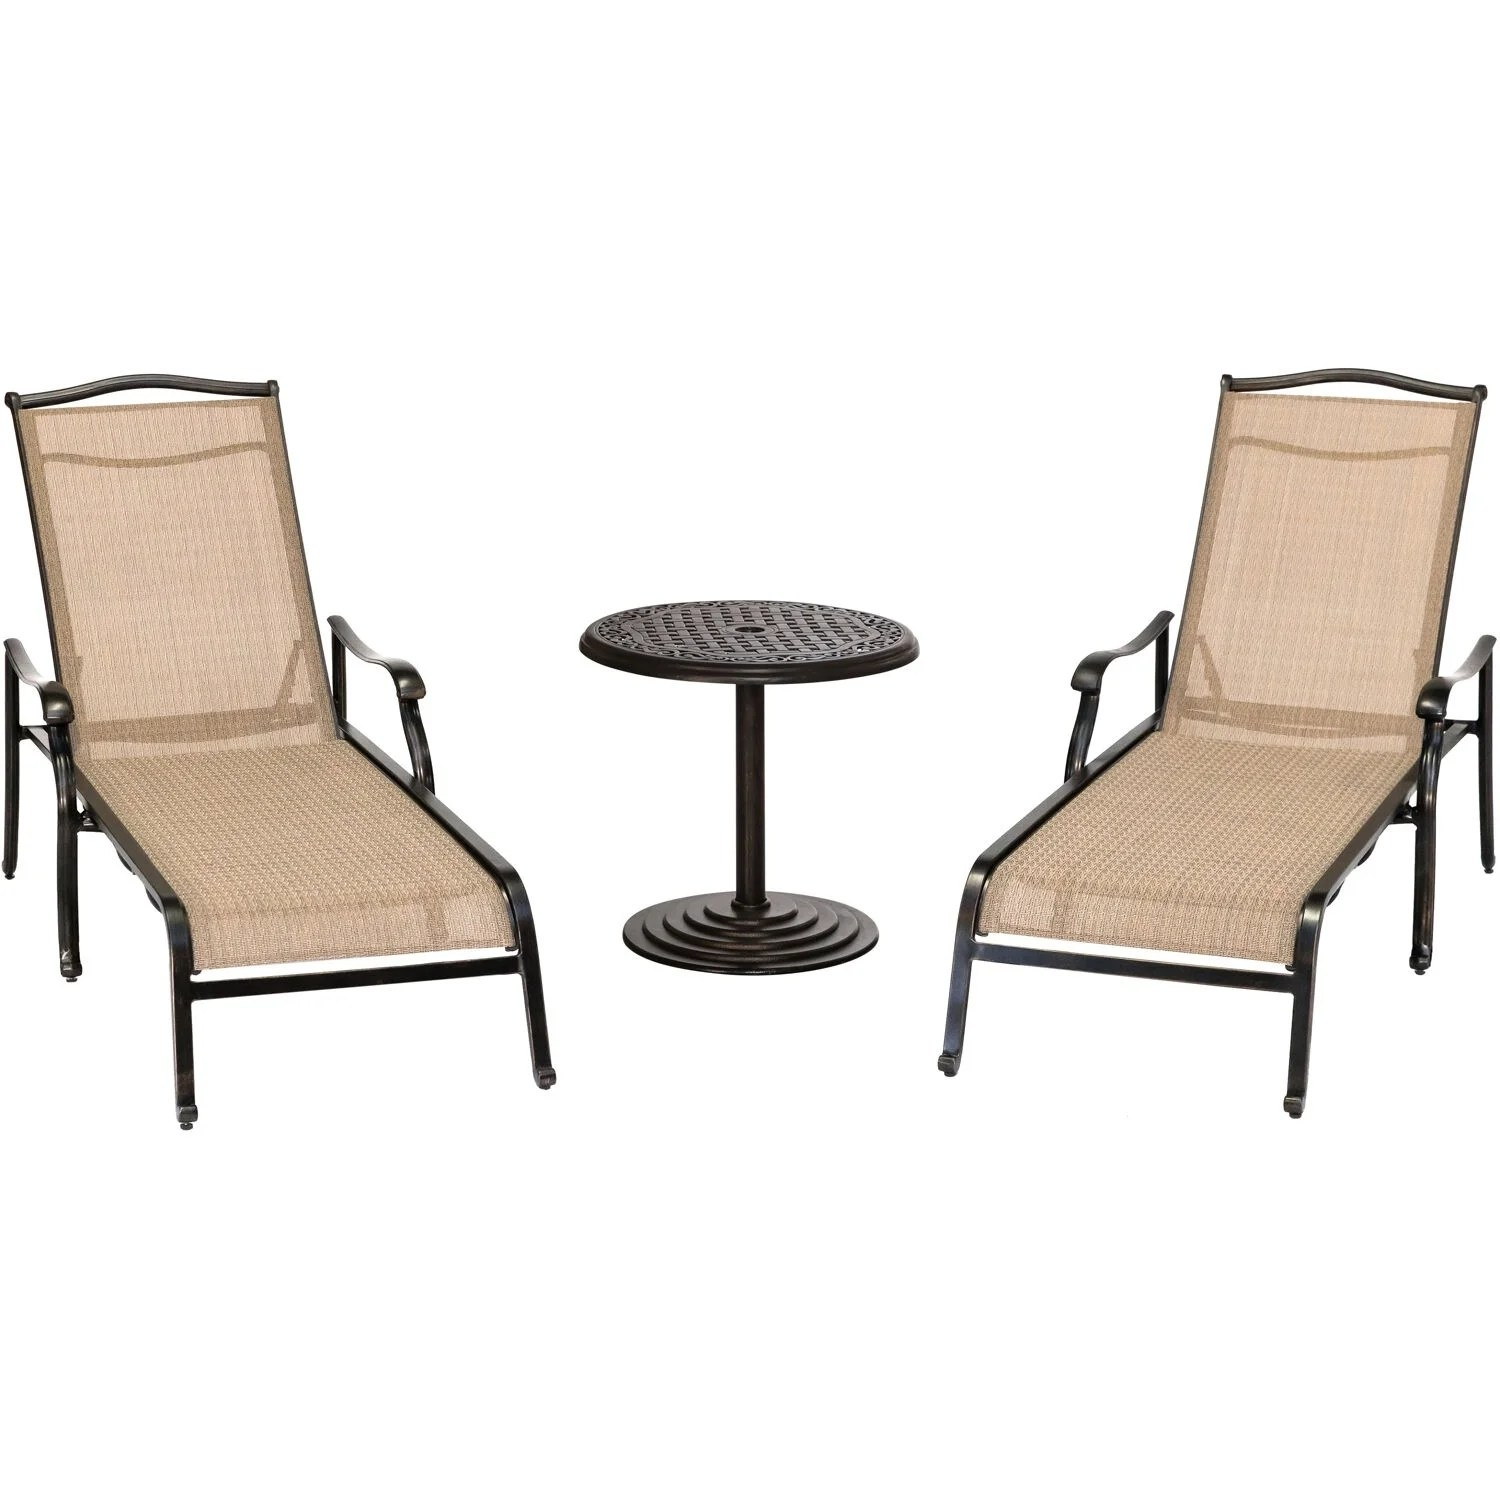 Table 2 Chaises Hanover Monaco 3 Piece Lounge Set With 2 Chaise Lounges And A 25 In Round Cast Top Umbrella Side Table